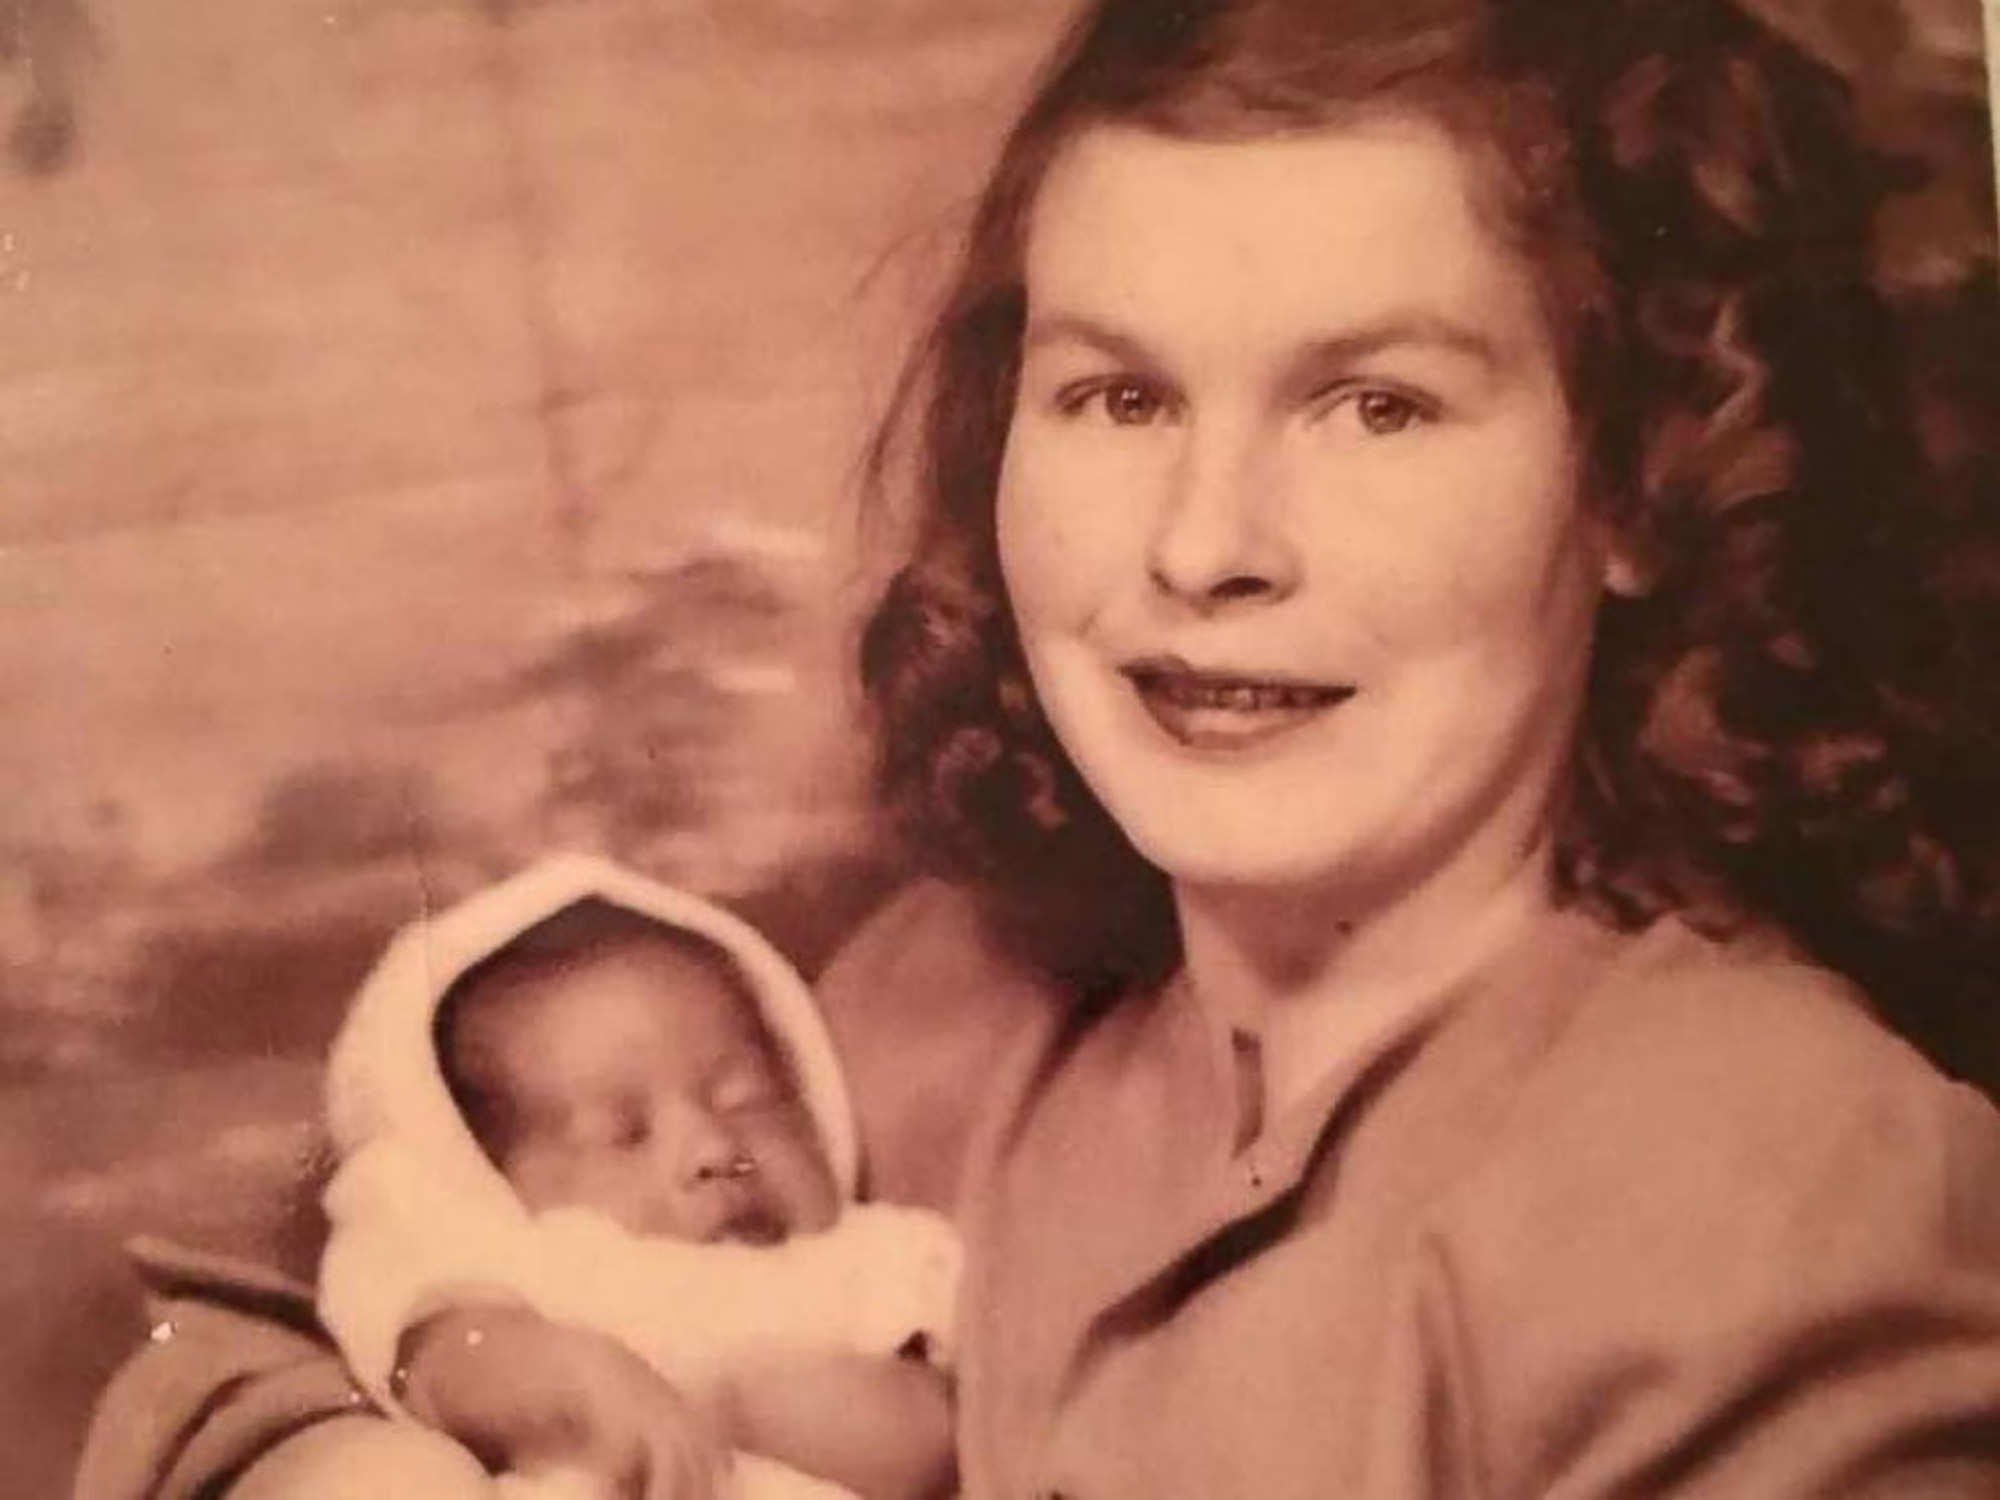 Sylvia Kewer with her birth mother